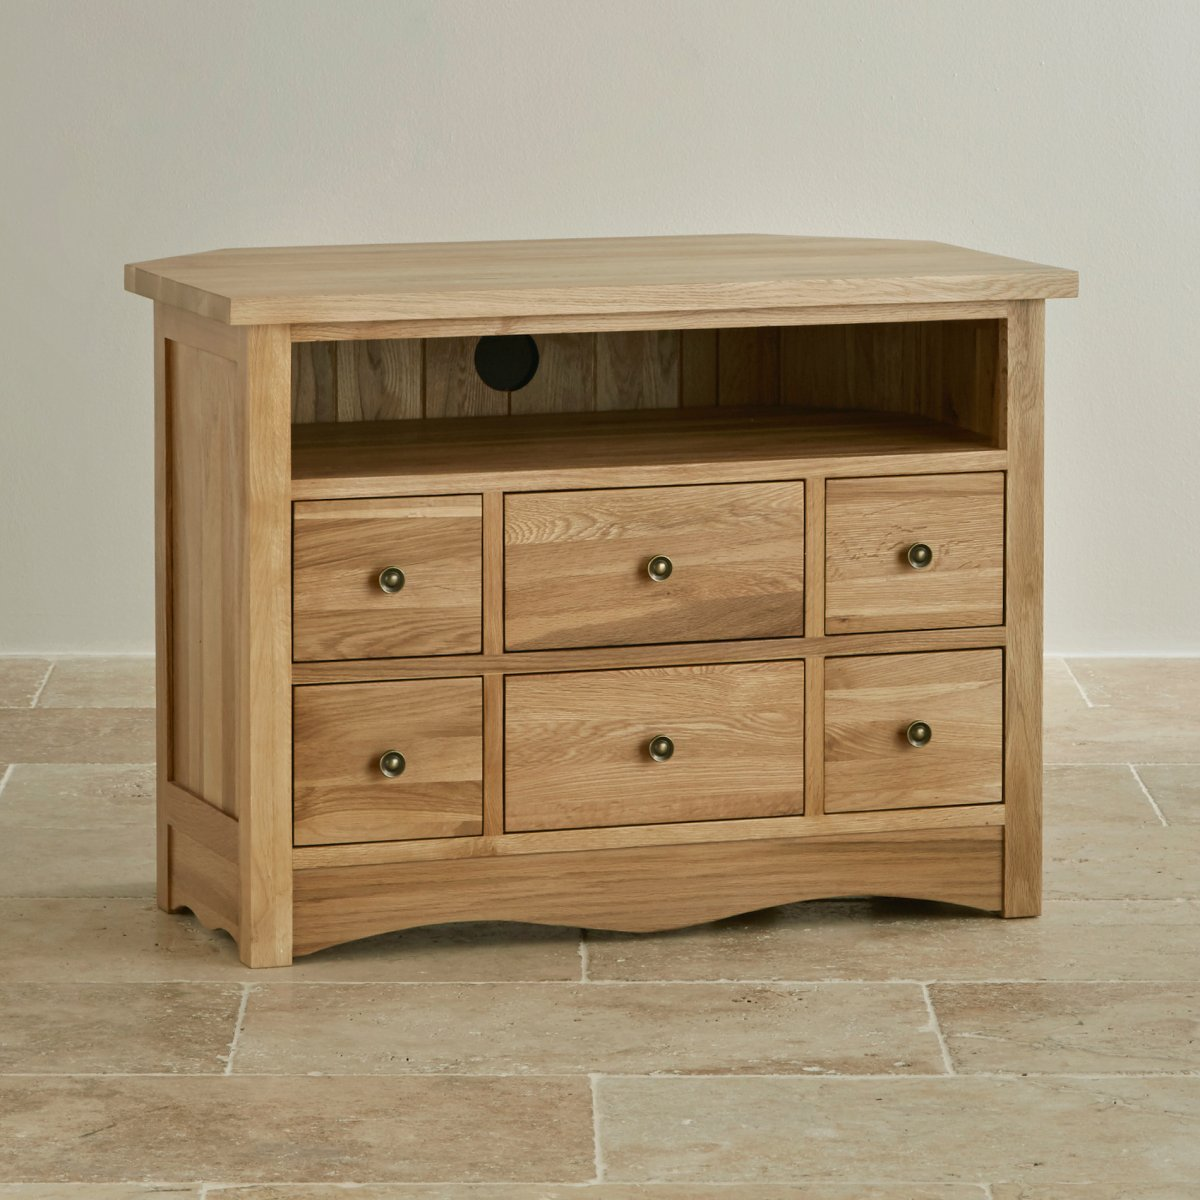 Cairo corner tv cabinet in natural solid oak oak for Solid oak furniture